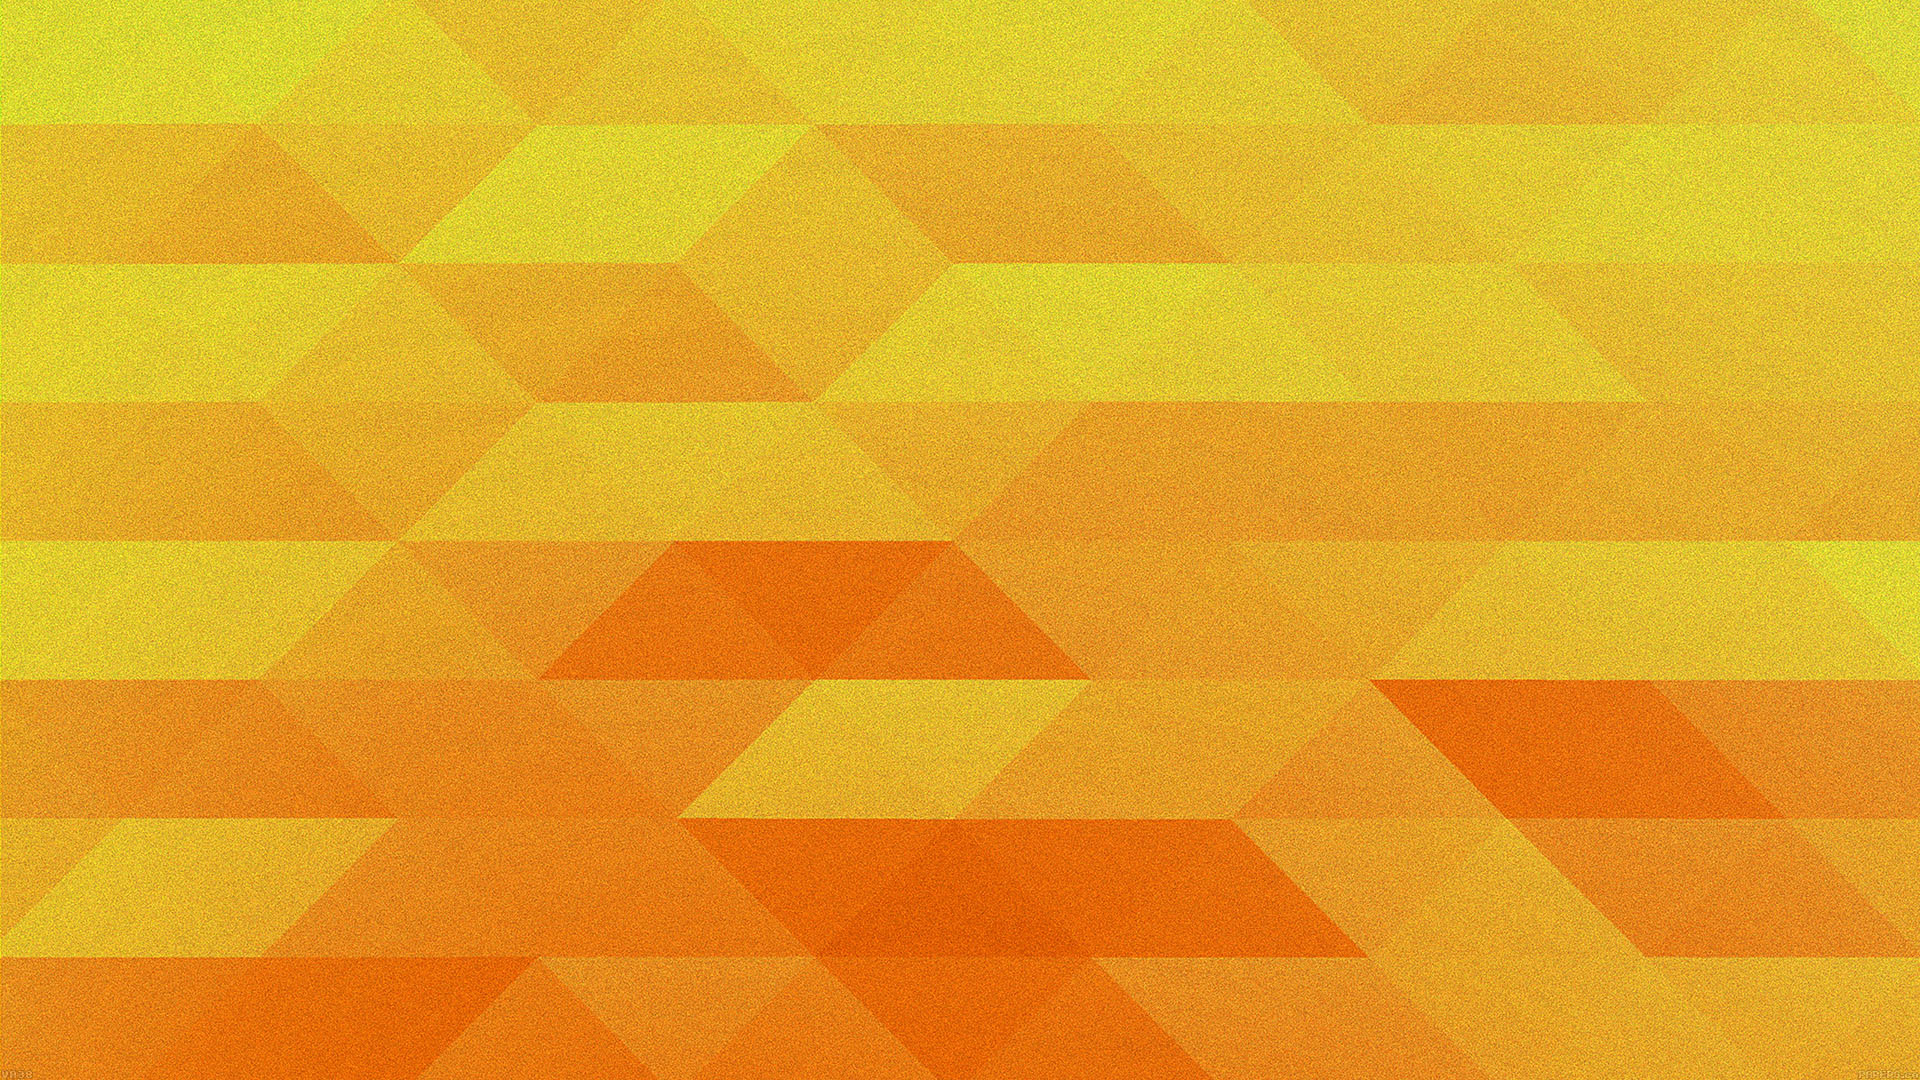 yellow wallpaper summary In this lesson, we will examine the famous short story the yellow wallpaper we will consider the ways in which charlotte perkins gilman uses the.